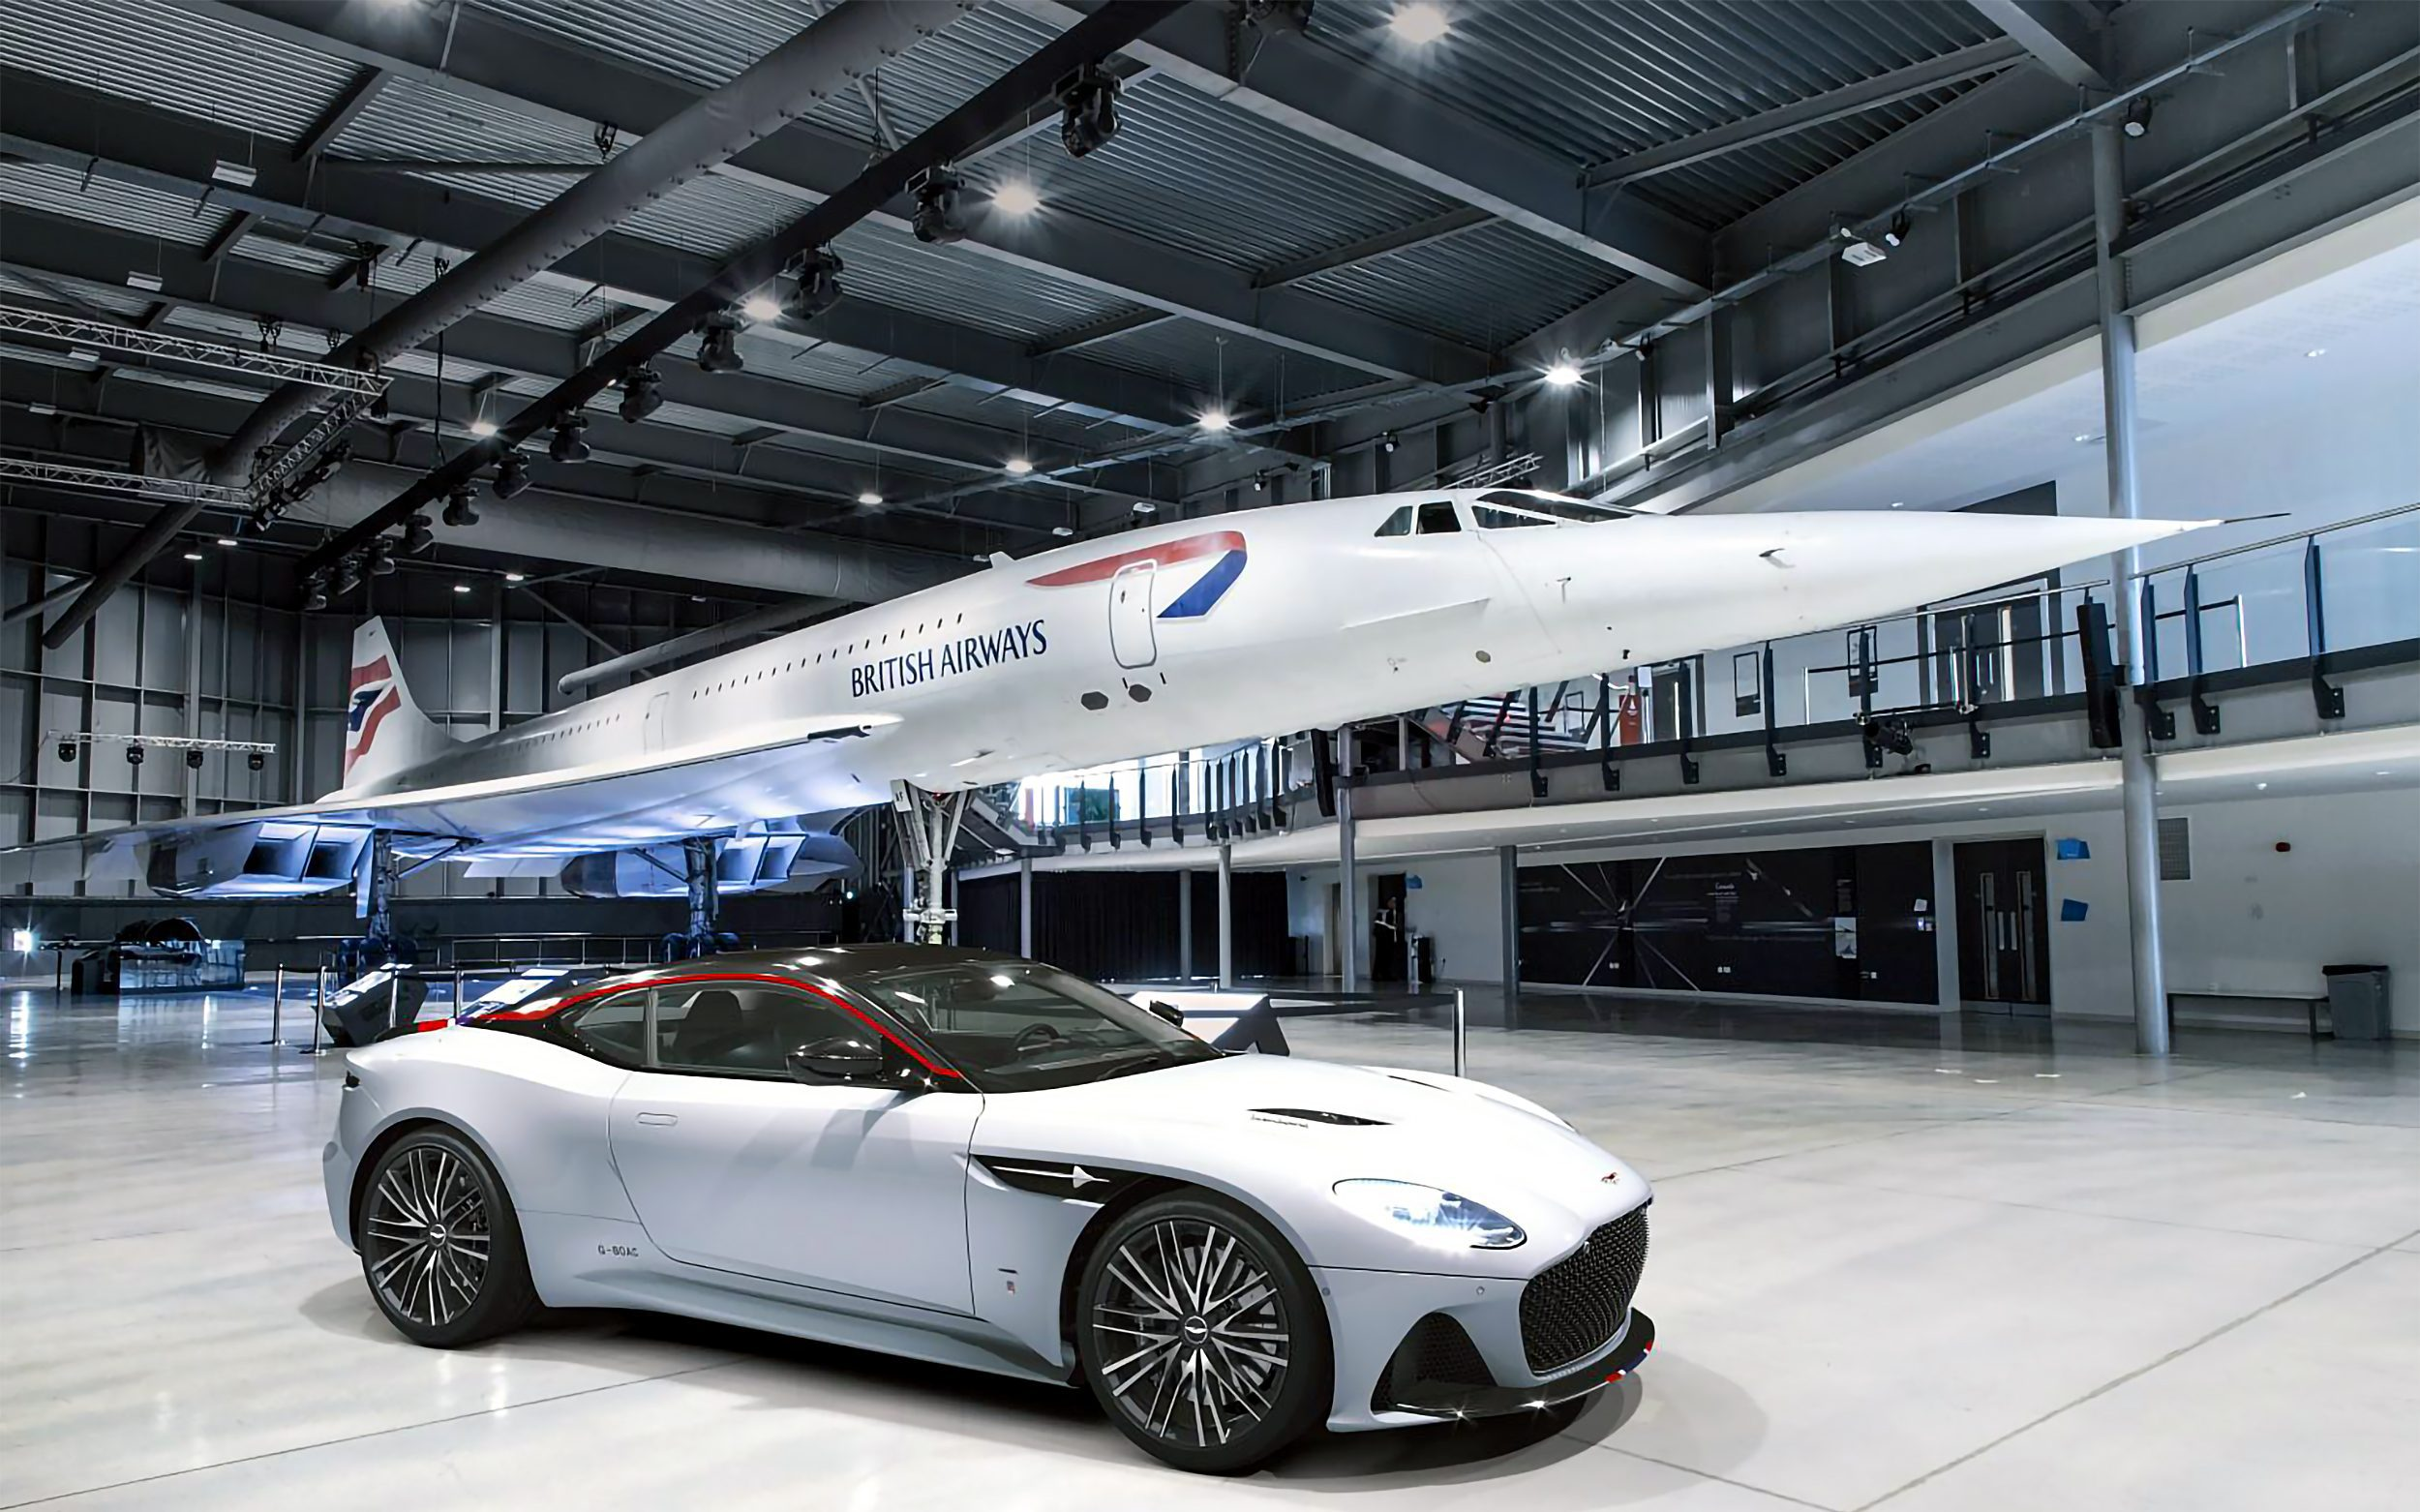 An Aston Martin and a Concorde aeroplane in a hangar with grey Prihoda fabric ducts